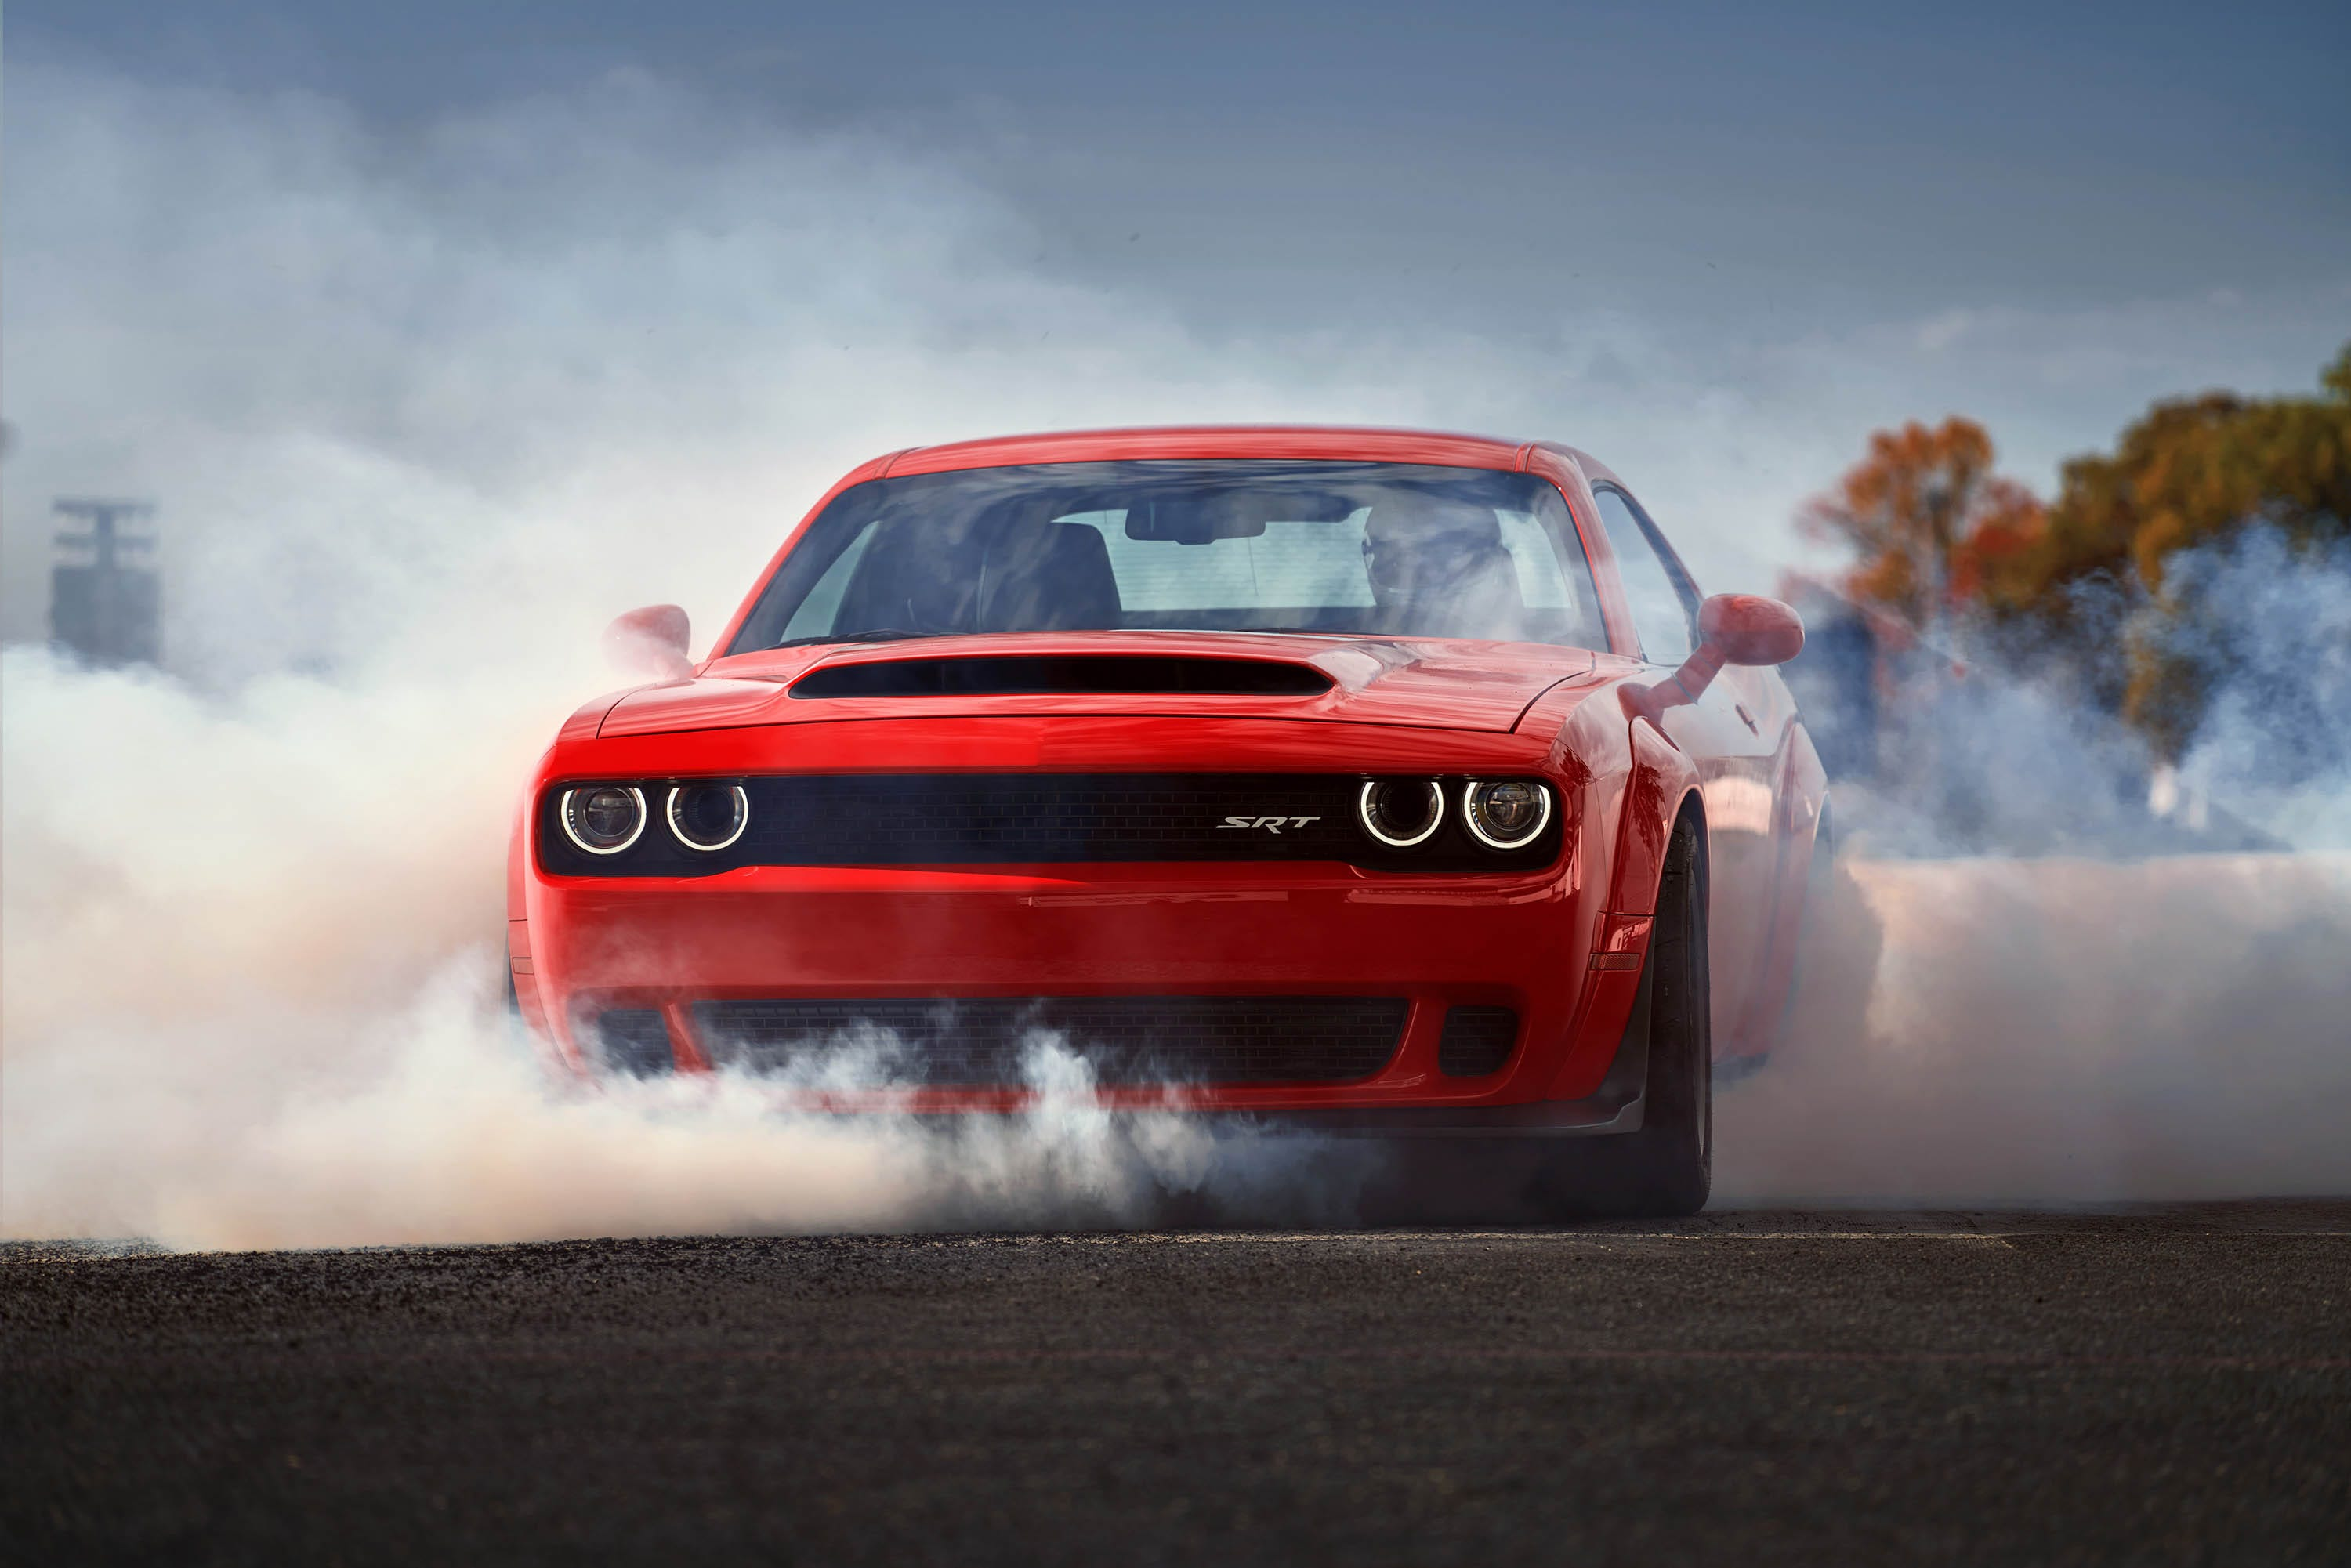 Dodge Challenger SRT Demon To Get 840 Horsepower